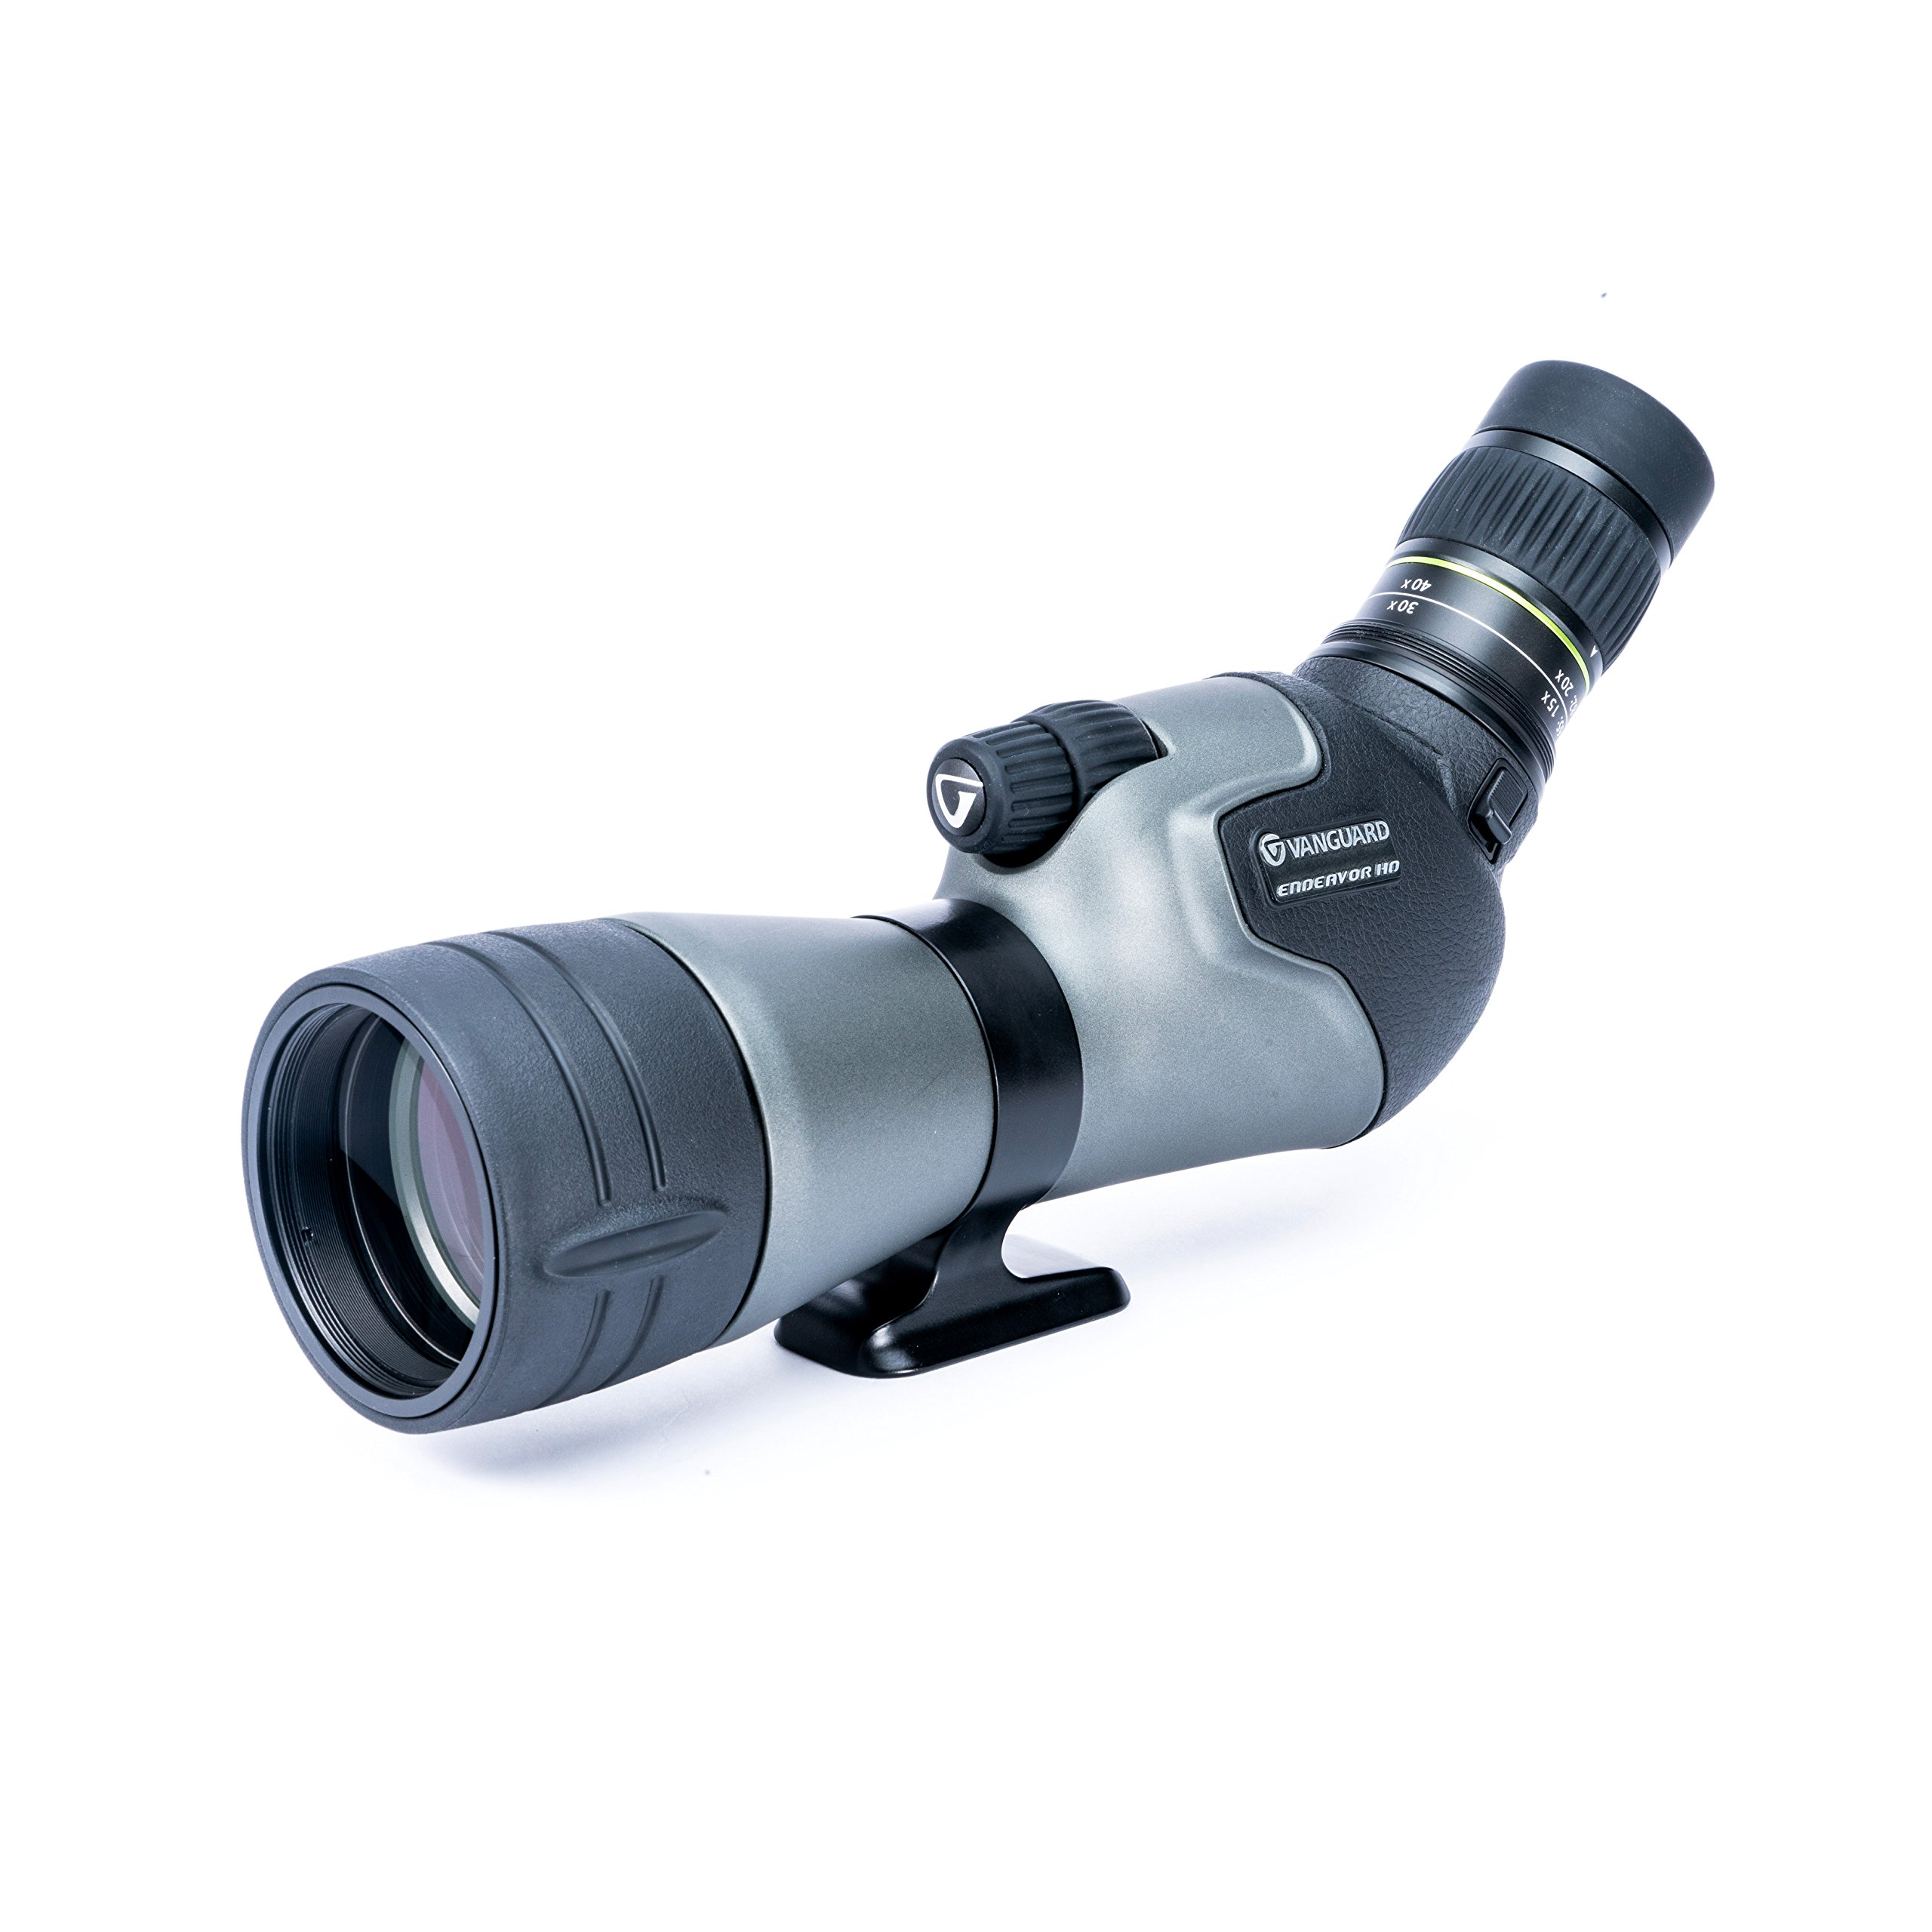 Vanguard Endeavor HD 82A Angled Eyepiece Spotting Scope